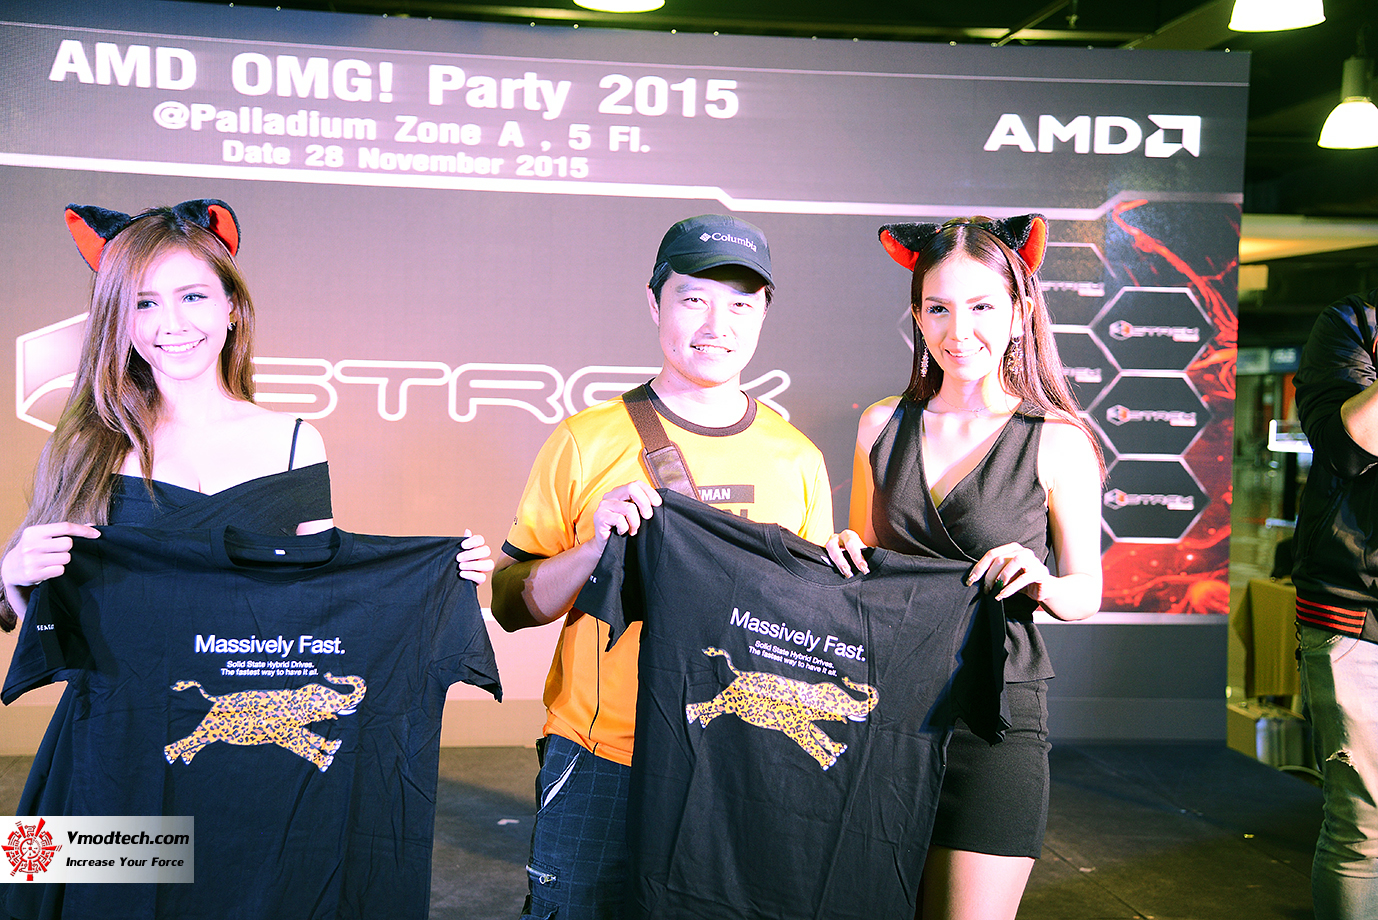 dsc 6926 AMD OMG! Party 2015 (AMD Overclock Modding Gaming Party 2015)